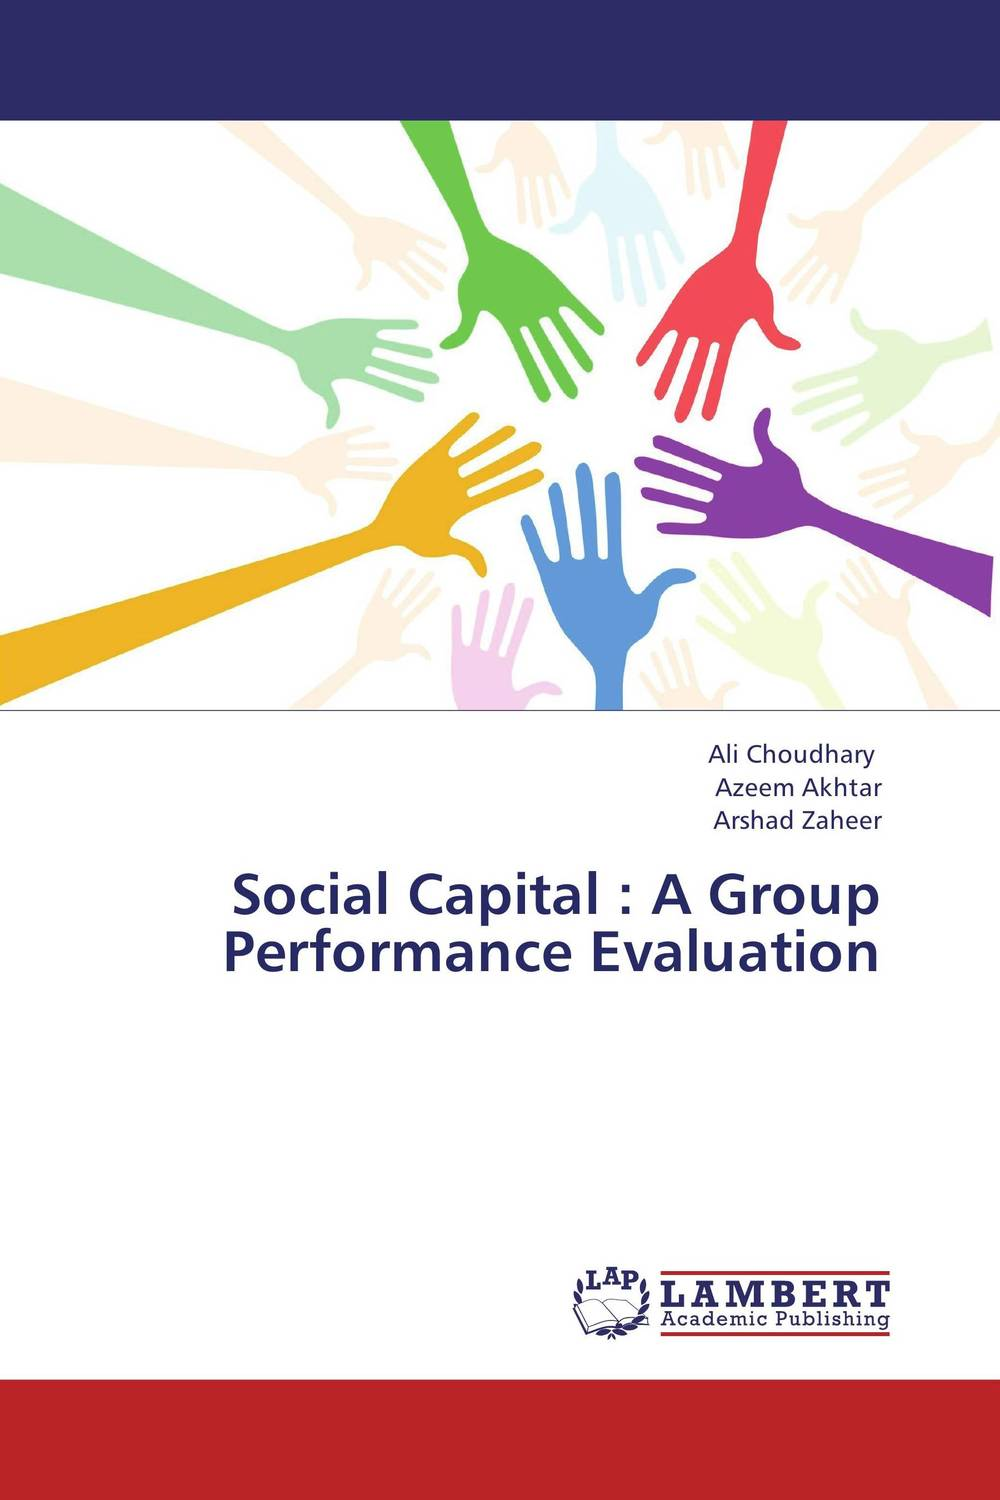 Social Capital : A Group Performance Evaluation